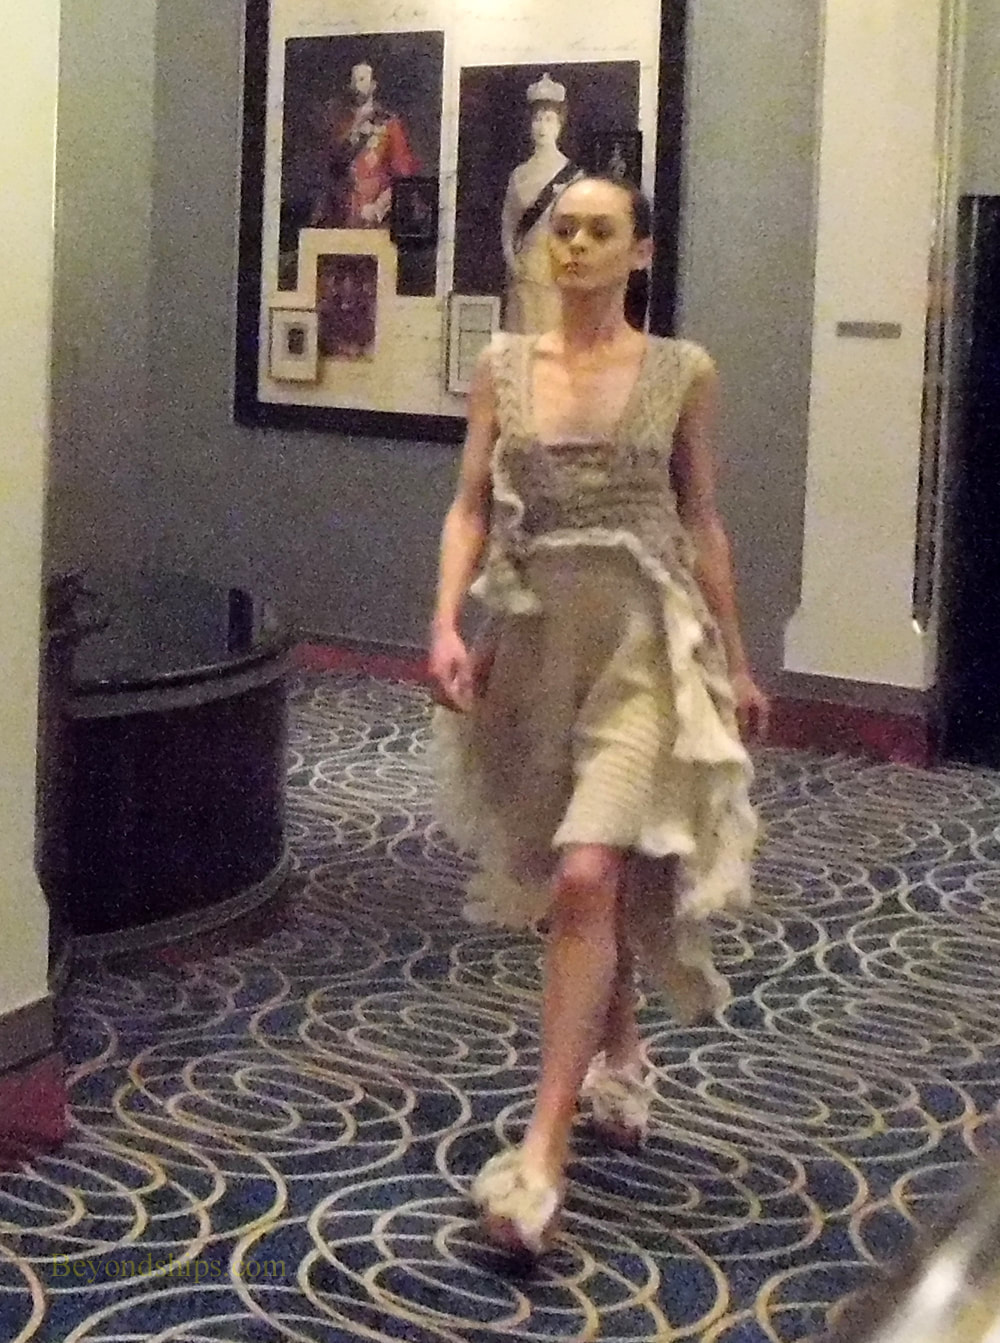 Fashion show on Queen Mary 2